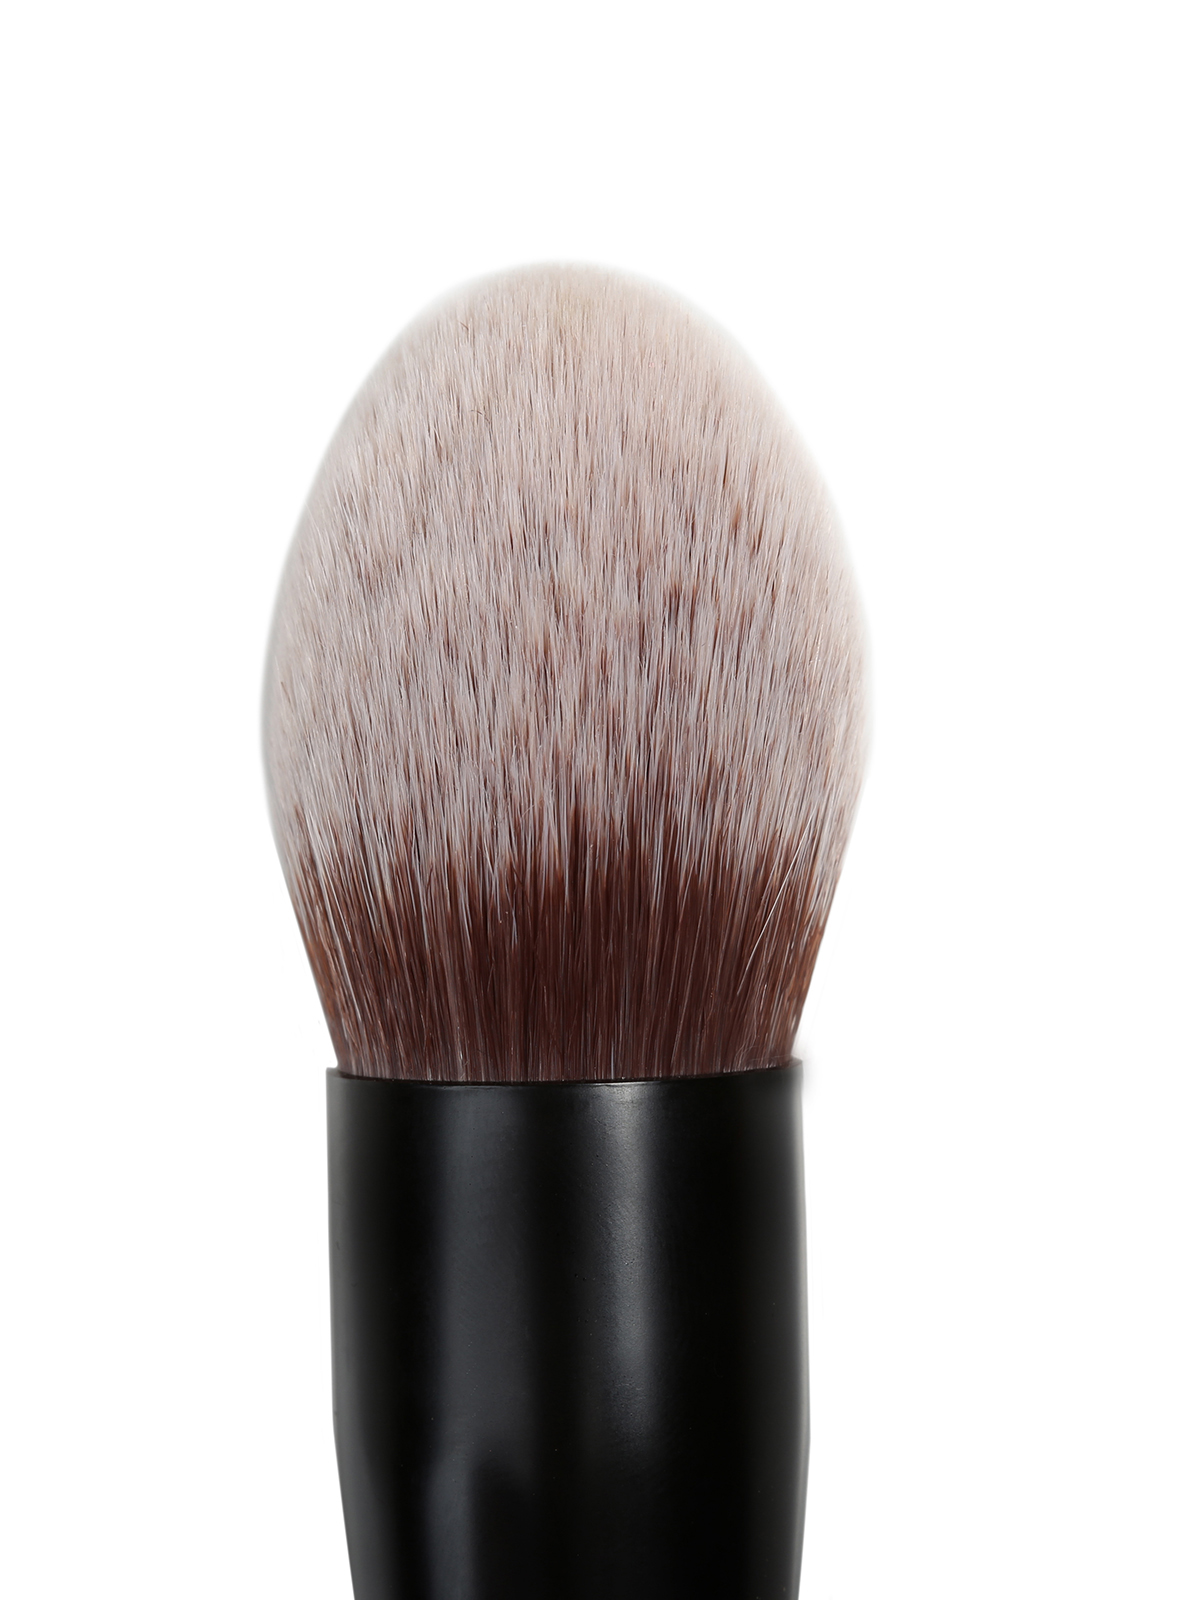 Foundation Blending Brush #231